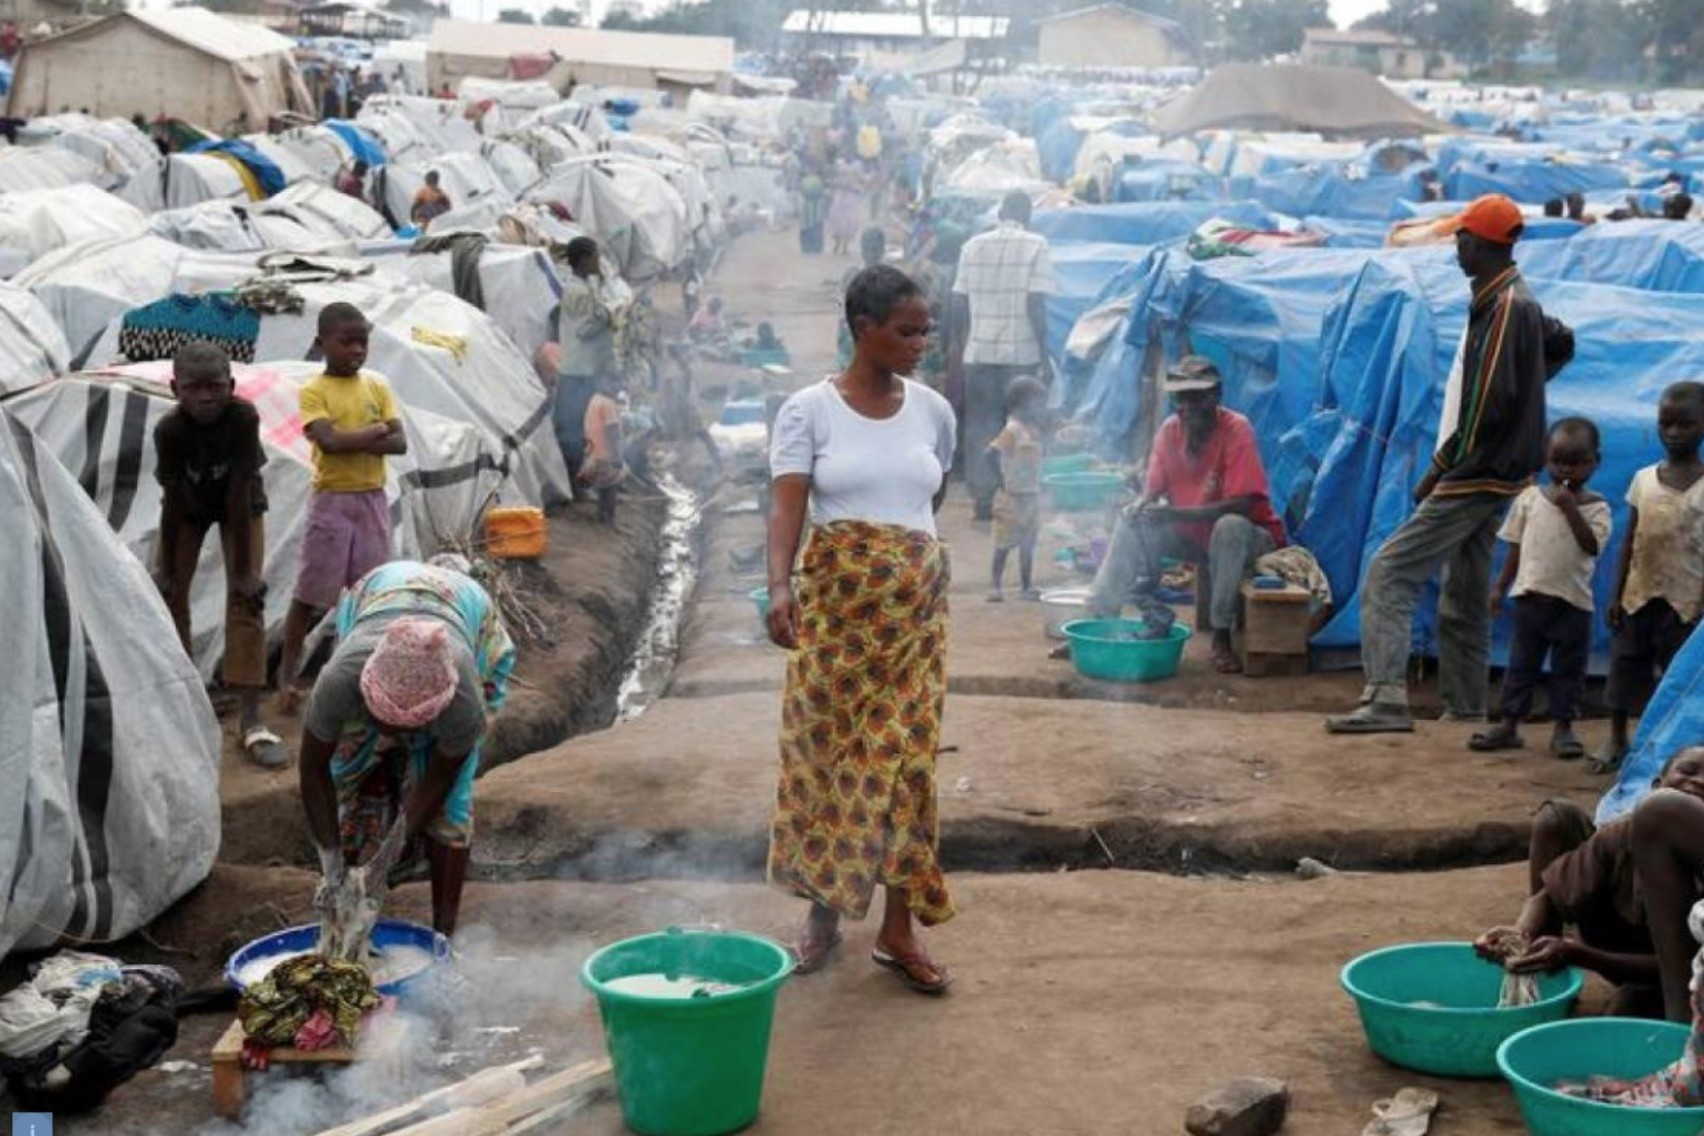 A woman walks at an internally displaced persons (IDP) camp in Bunia, eastern Democratic Republic of Congo, April 12.